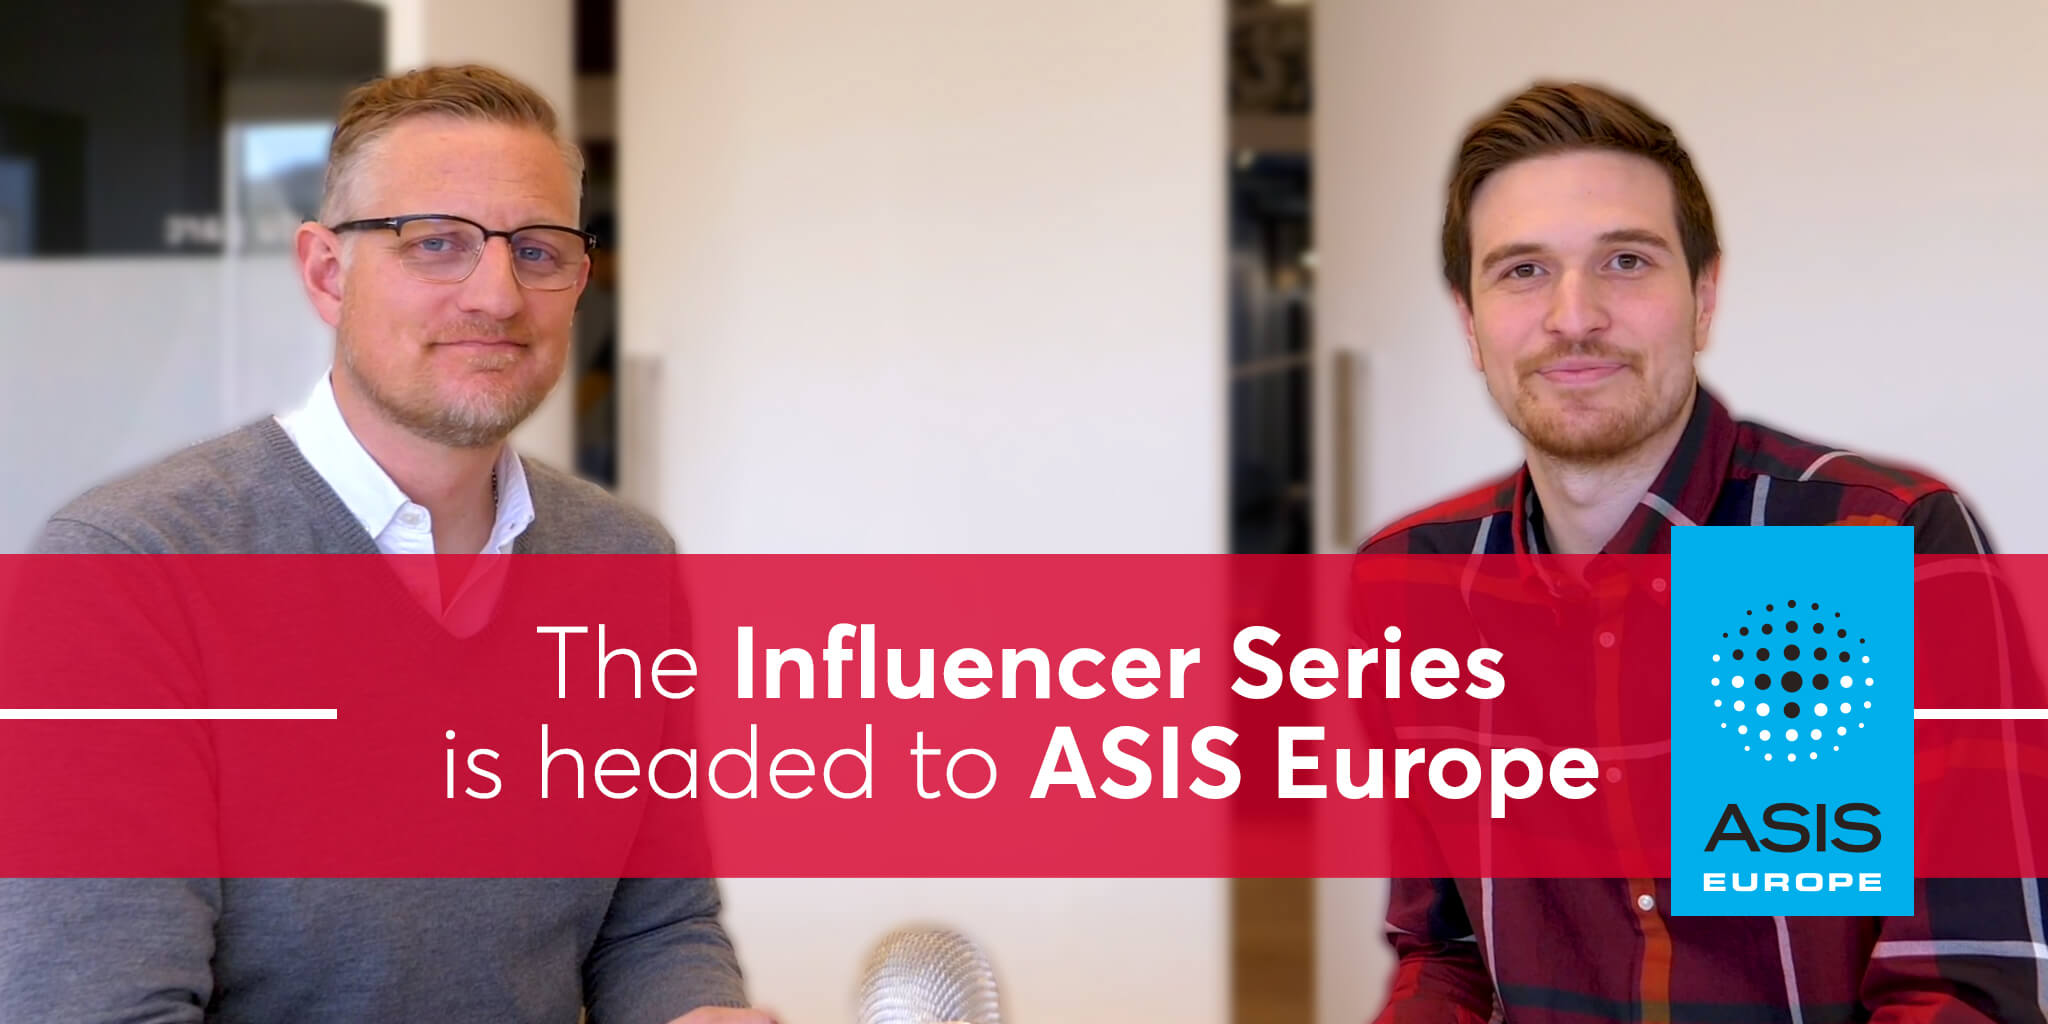 Tracktik influencer series visits asis europe